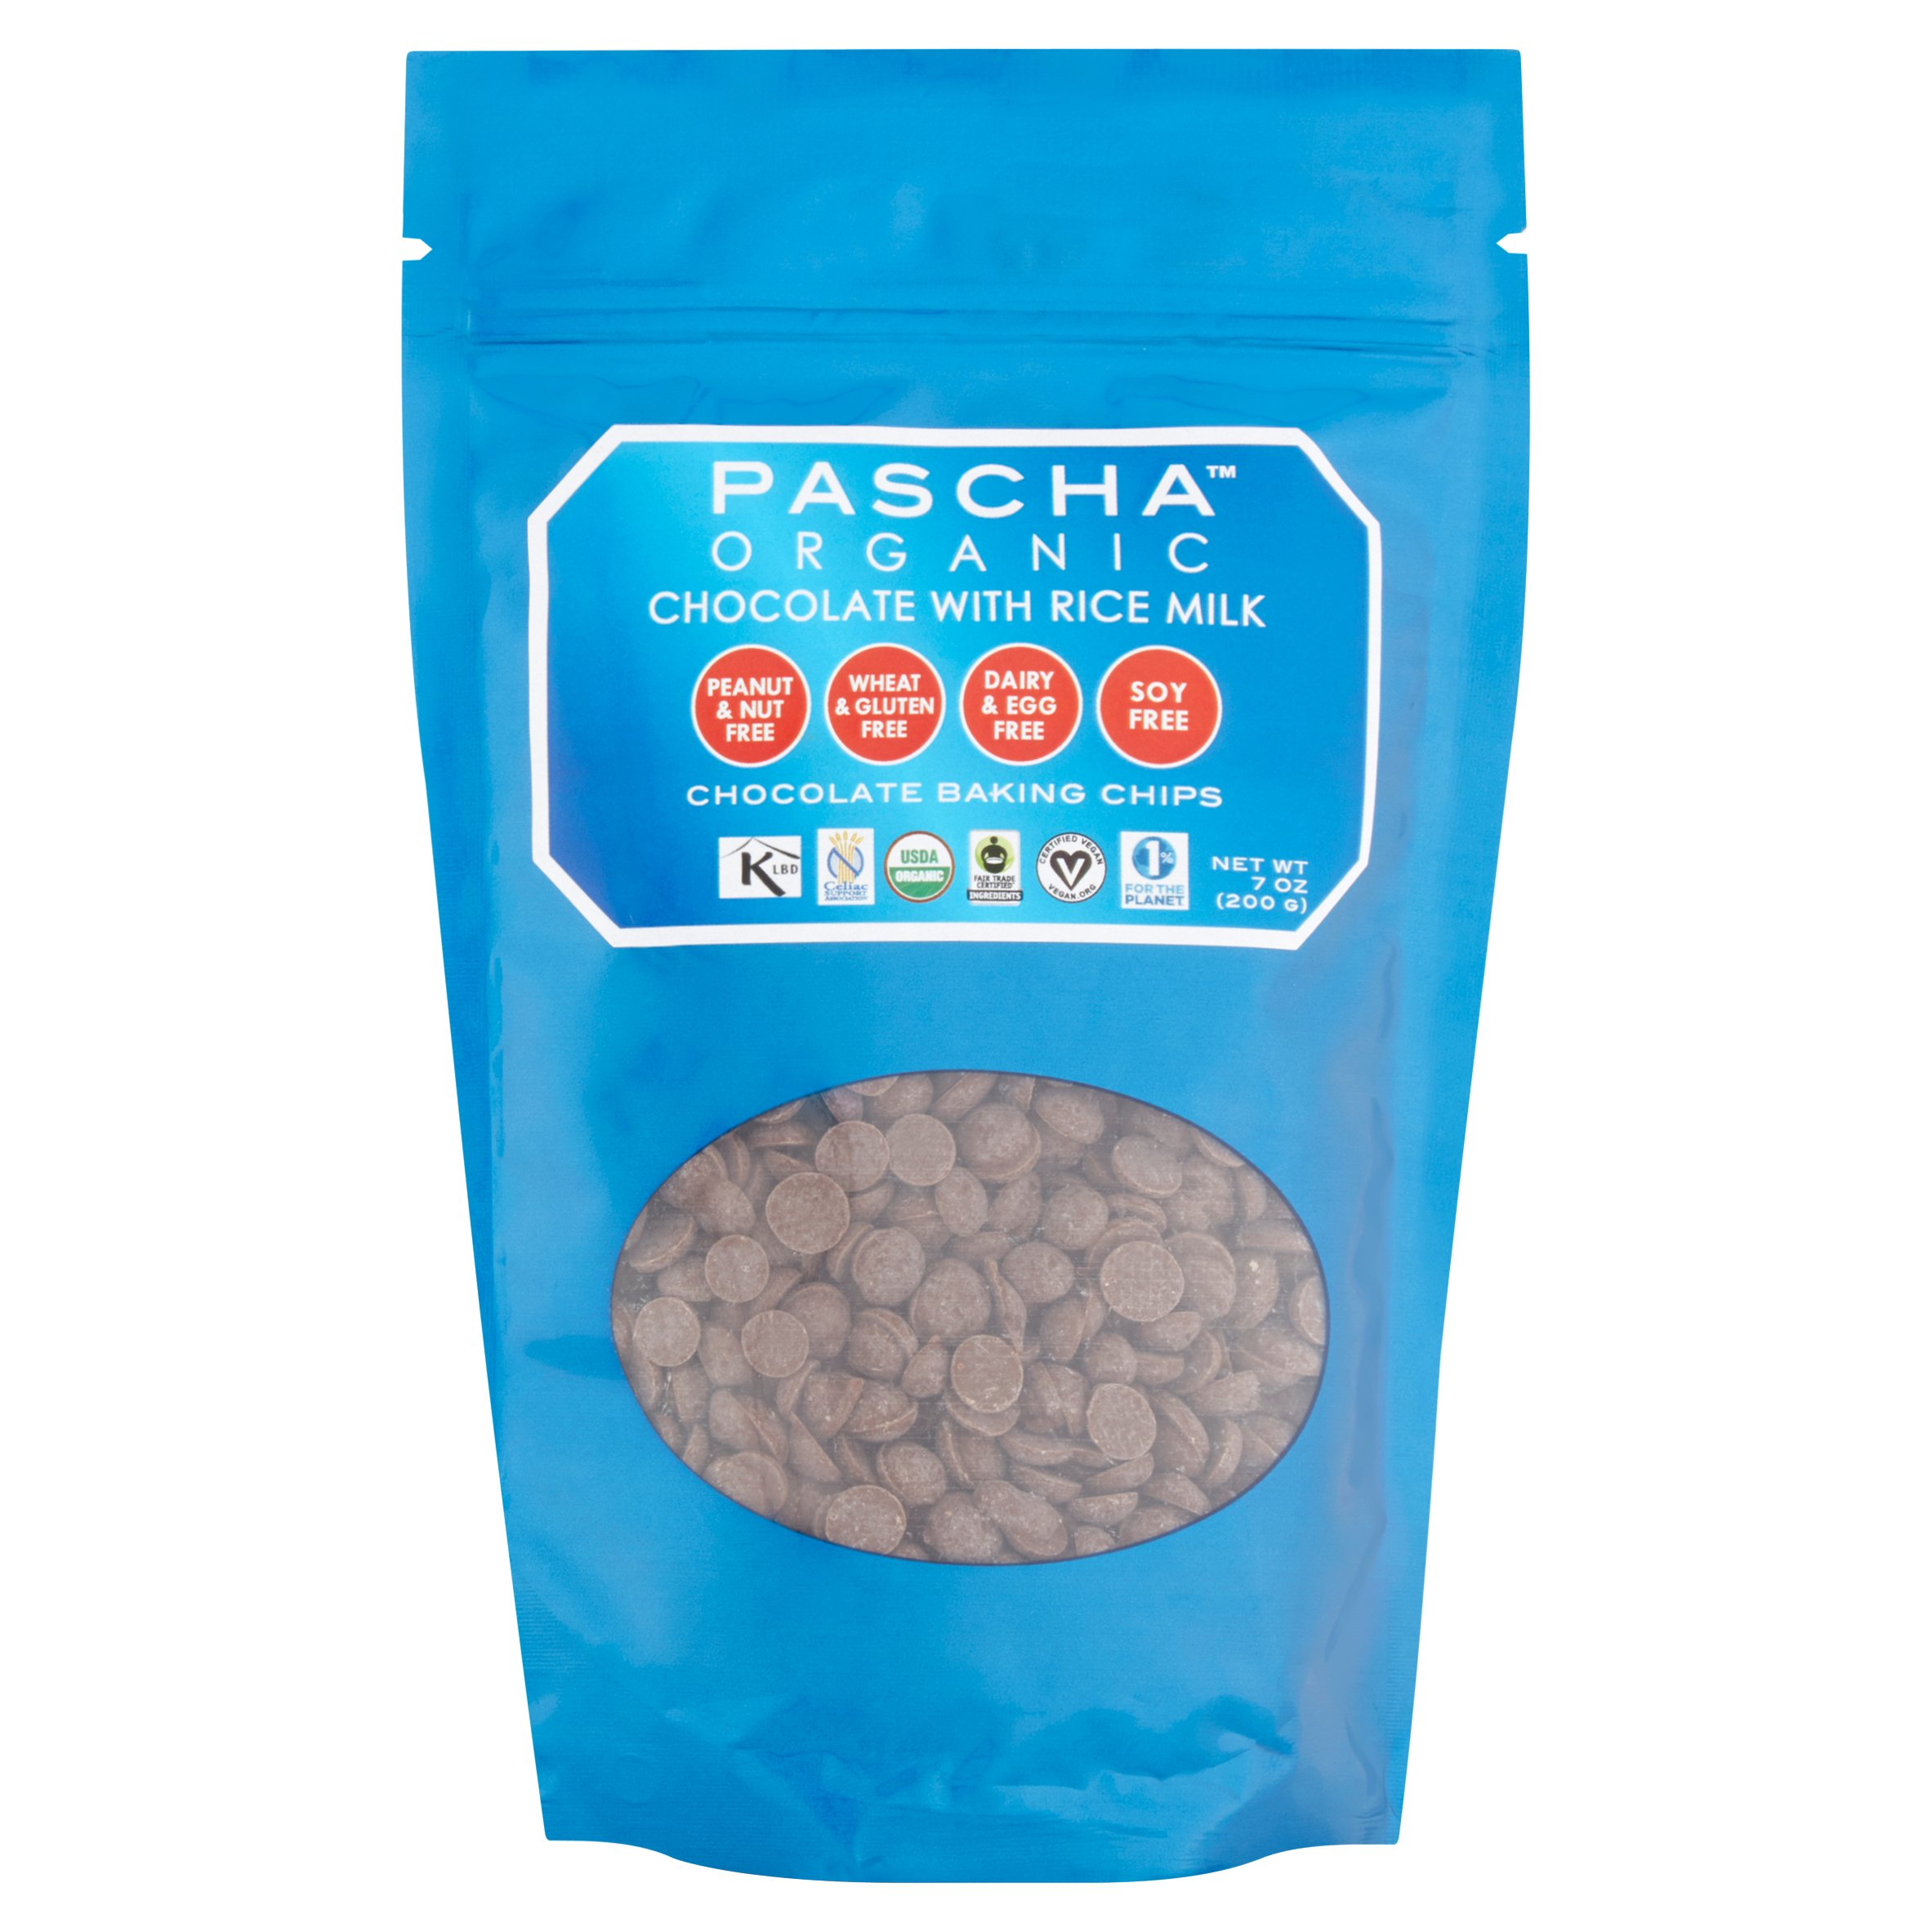 Pascha Organic Chocolate Baking Chips with Rice Milk, 7 oz, 8 pack by Pascha Chocolate Co